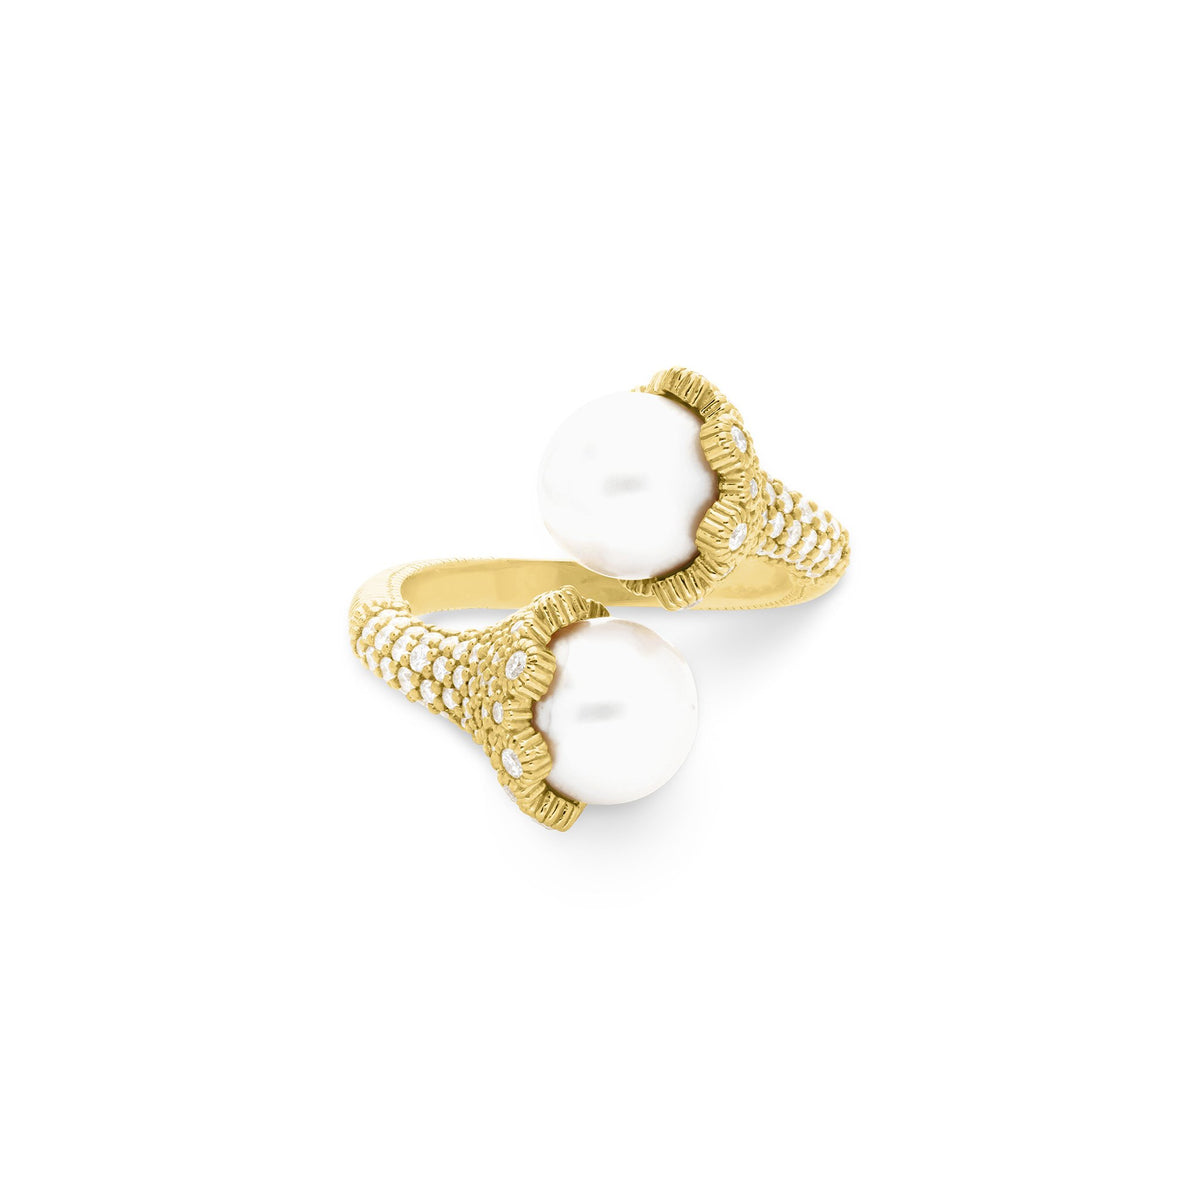 Paloma Bypass Ring with Freshwater Pearls and Diamonds in 18K